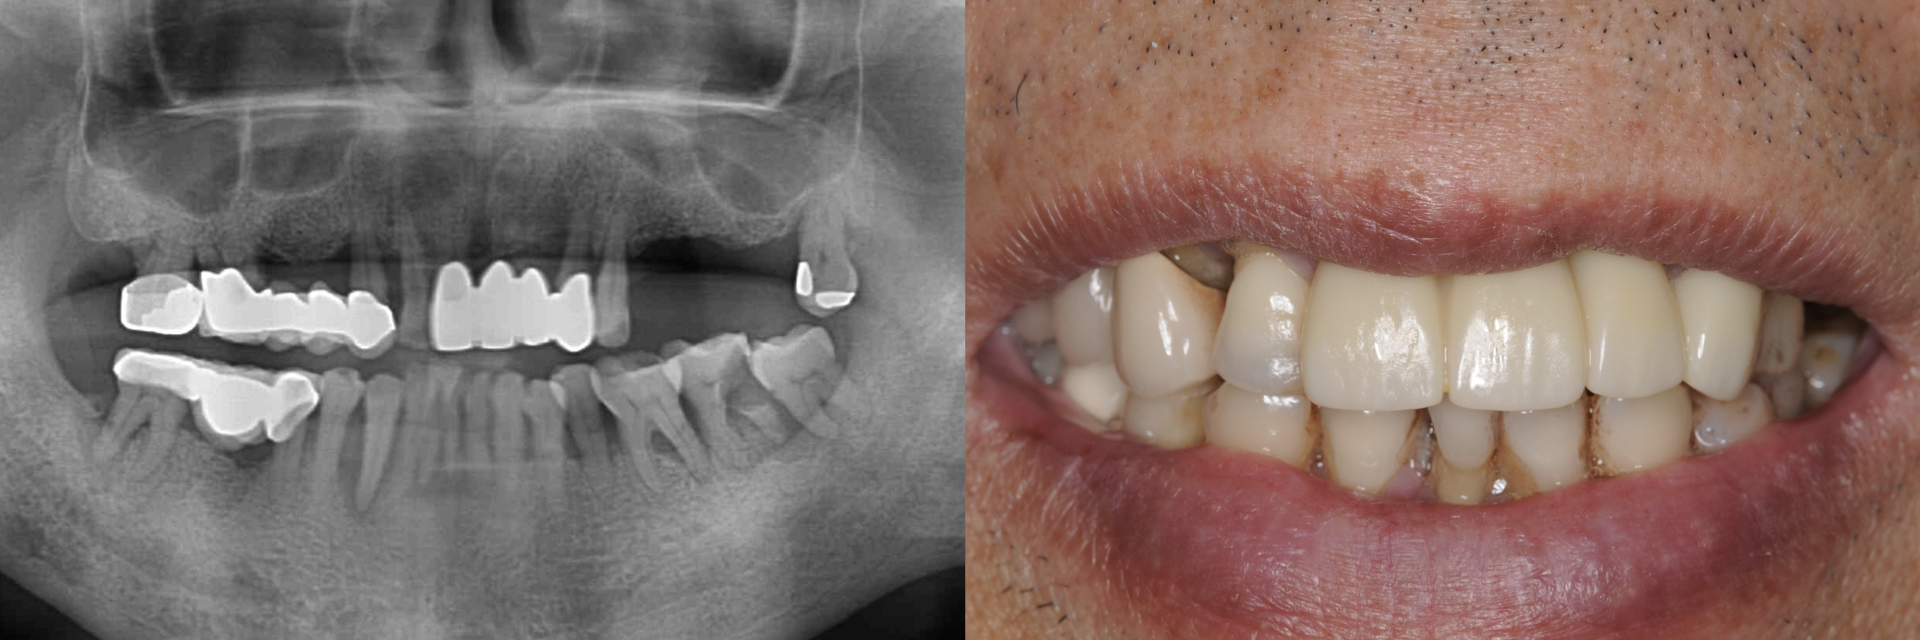 Digital-Workflow-for-Full-Arch-Implant-Supported-Teeth-Chrome-GuidedSmile-Kazemi-Oral-Surgery-Bethesda-Implant-Dentist.002